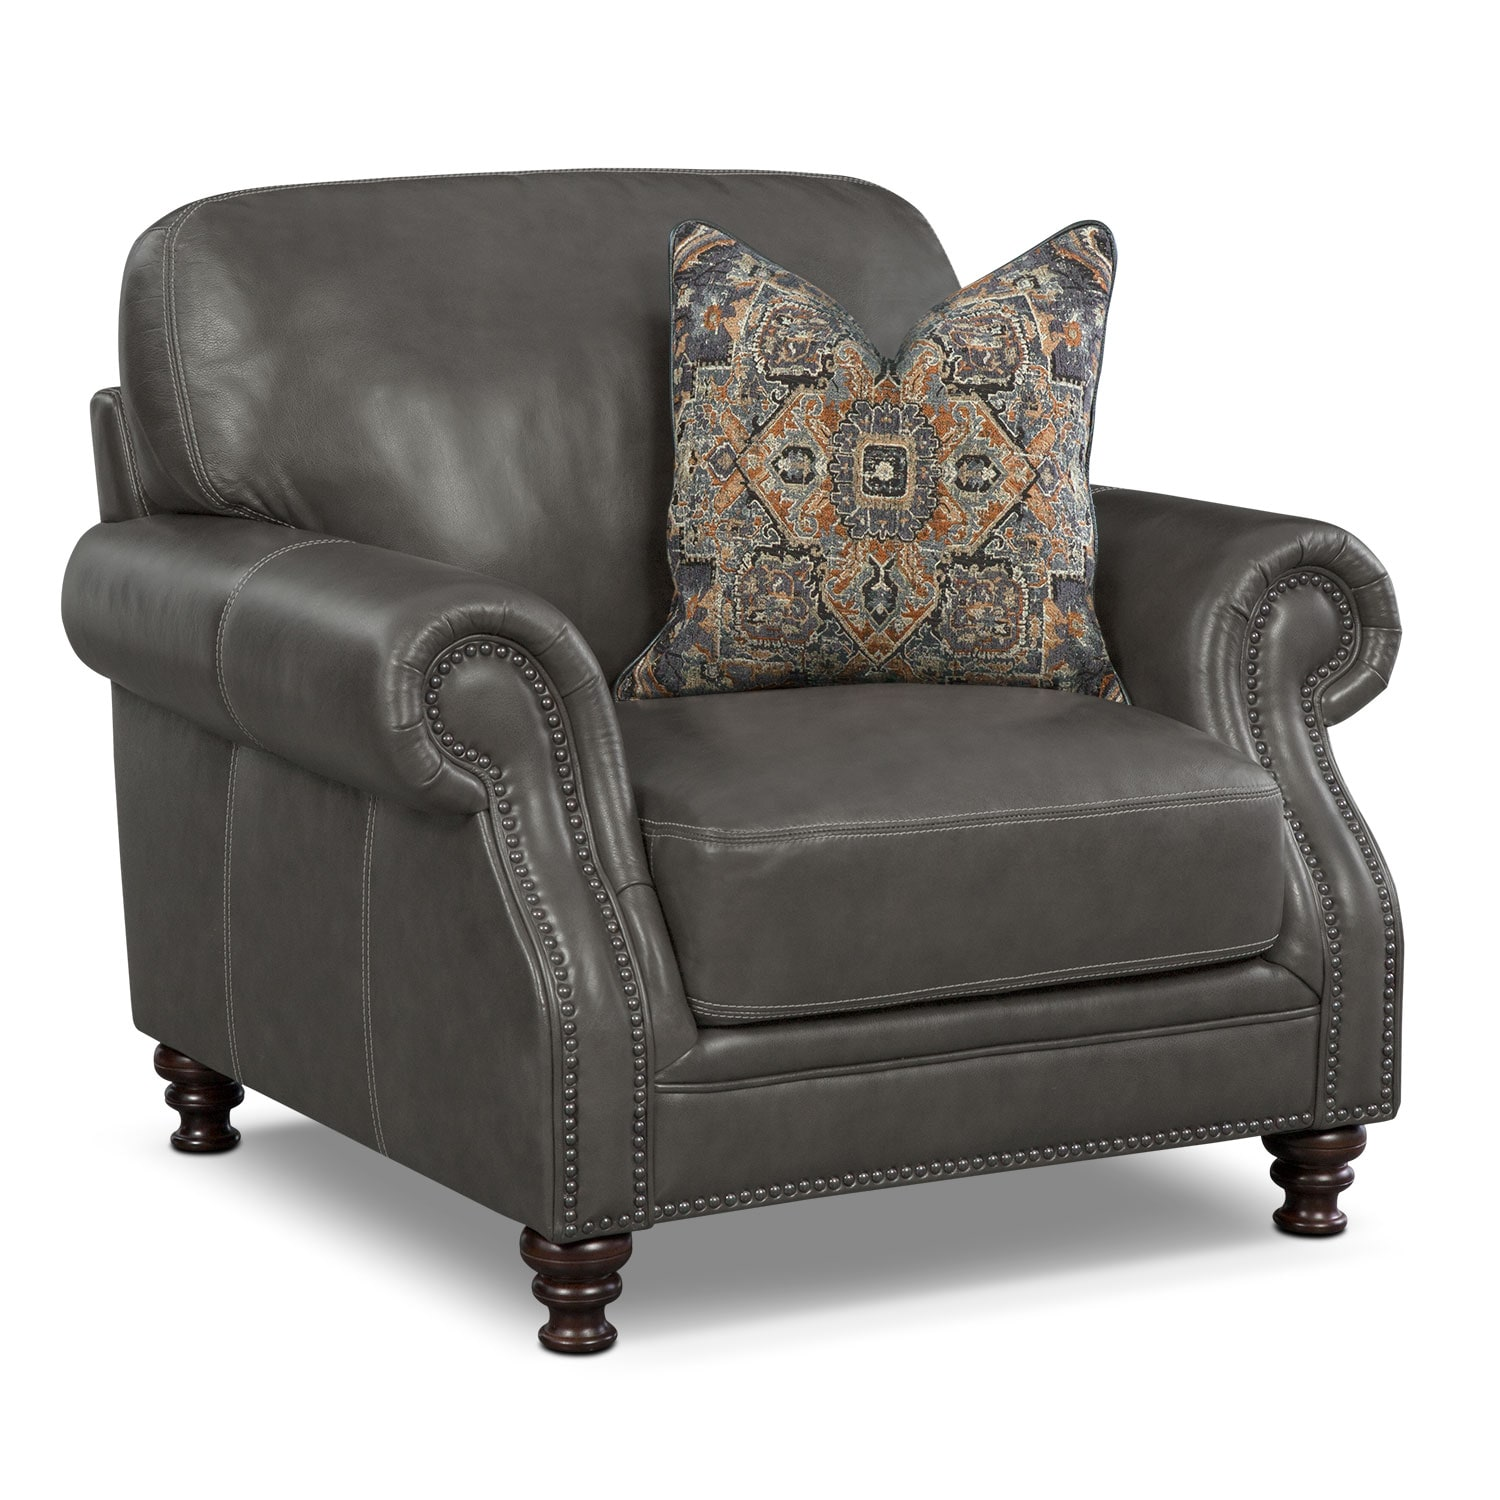 Living Room Furniture - Carrington Charcoal Chair